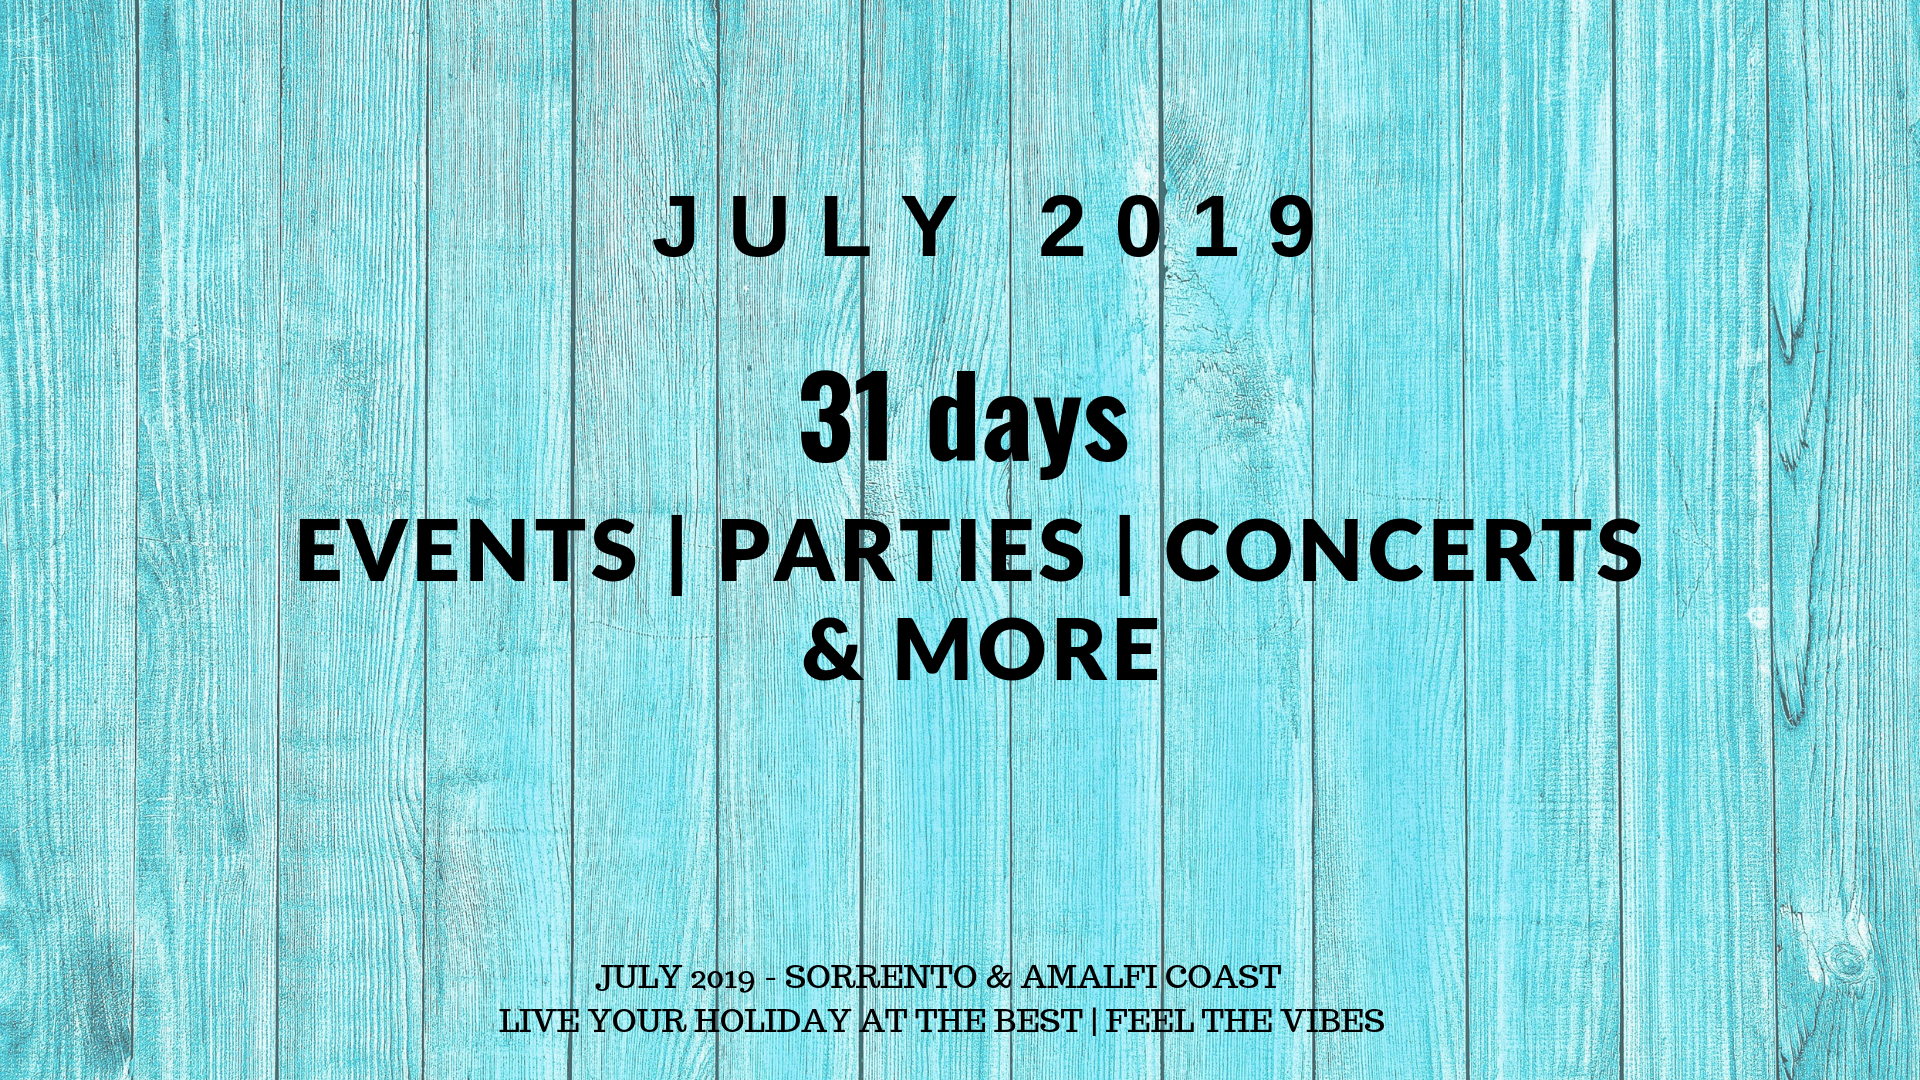 Sorrento in July 2019 - Events, food festivities and concerts | 2019